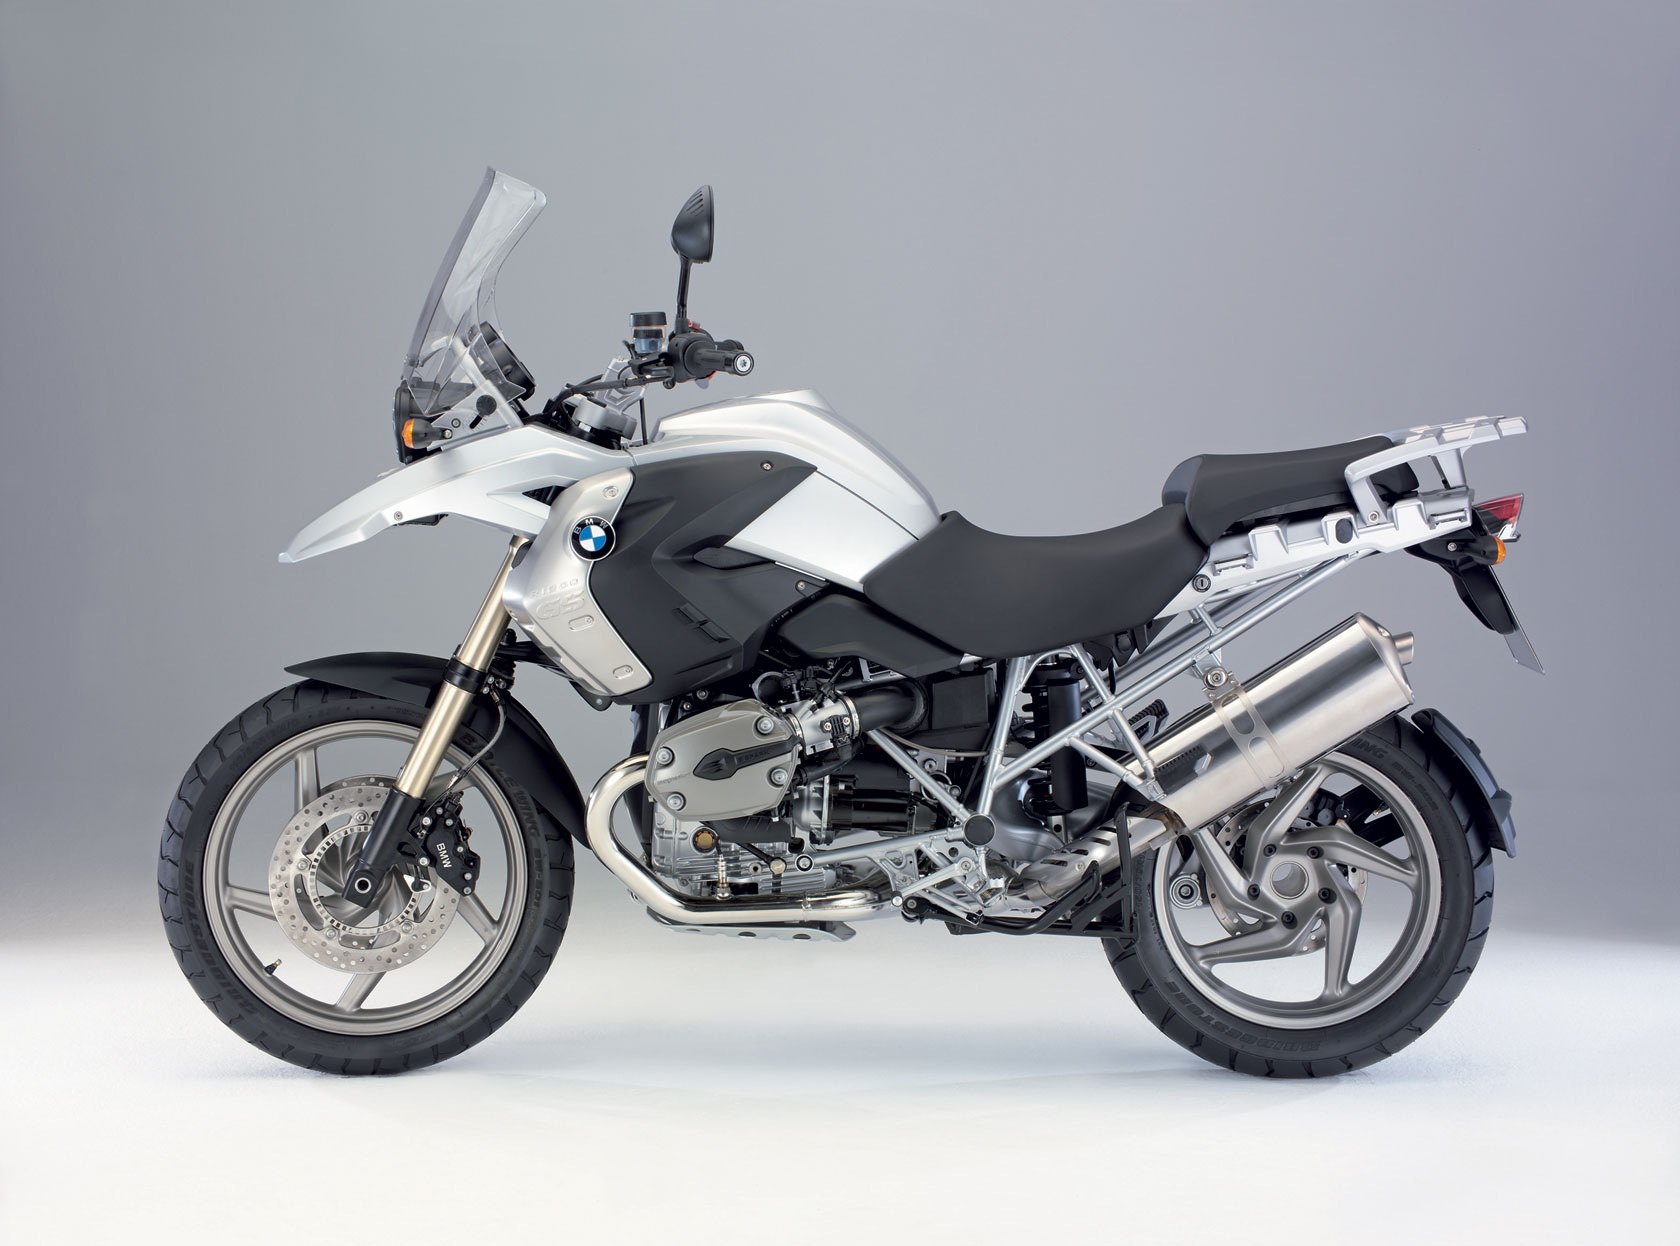 BMW R1200GS 2006 images #77999